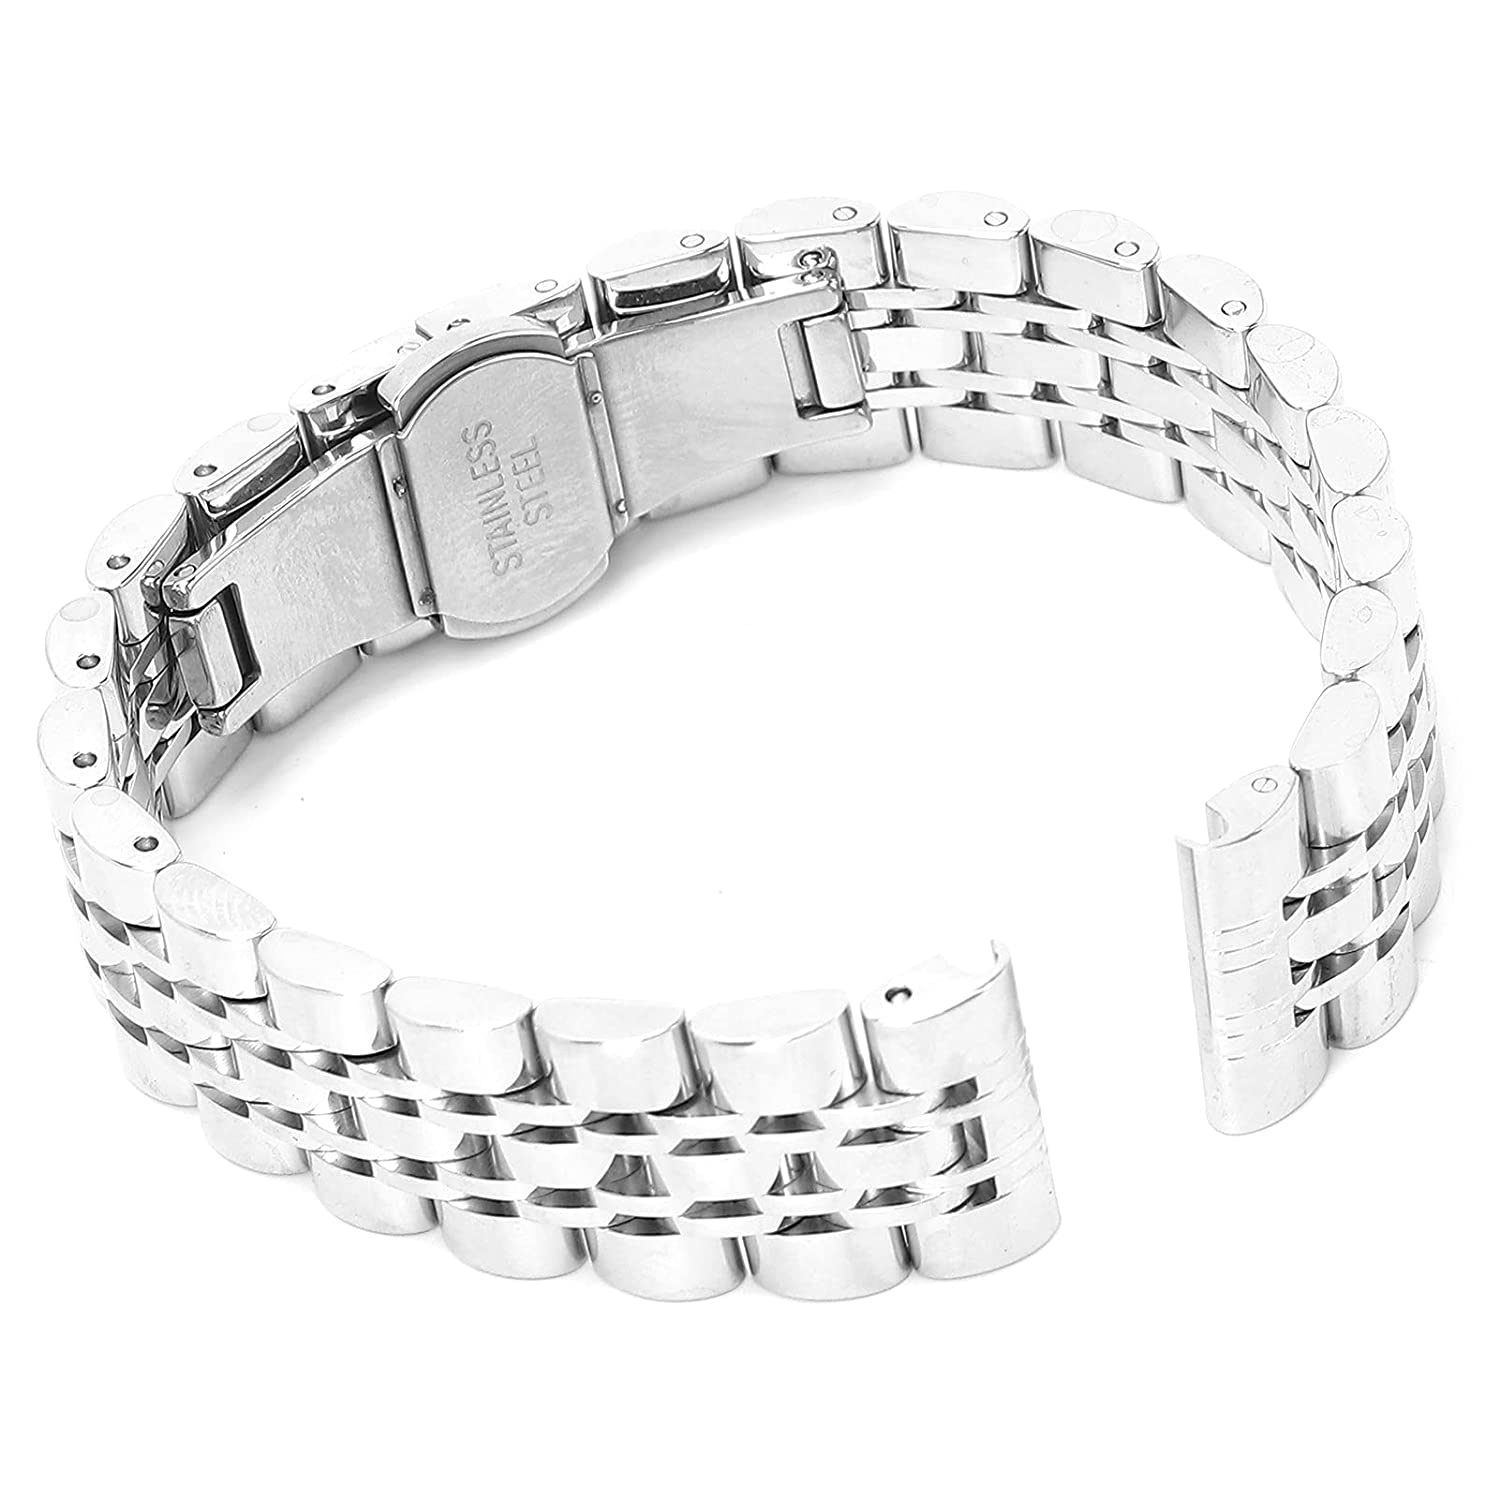 WatchBand service store Buckle Stainless Steel Watch Metal Strap Replacement